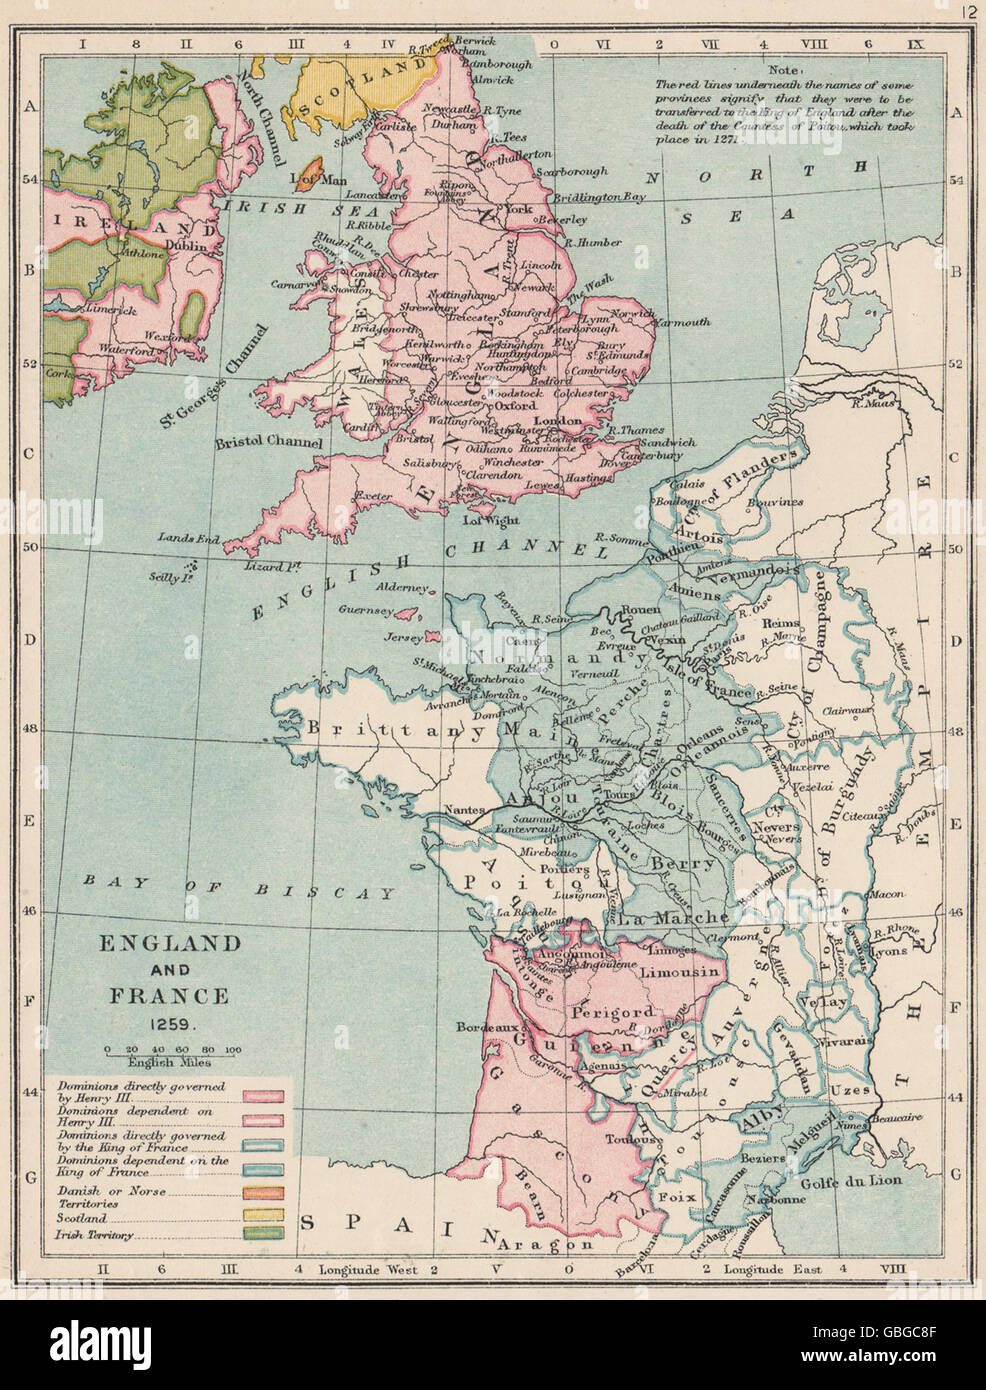 ENGLAND & FRANCE: Kingdoms & dependencies in 1259. English possessions,  1907 map -